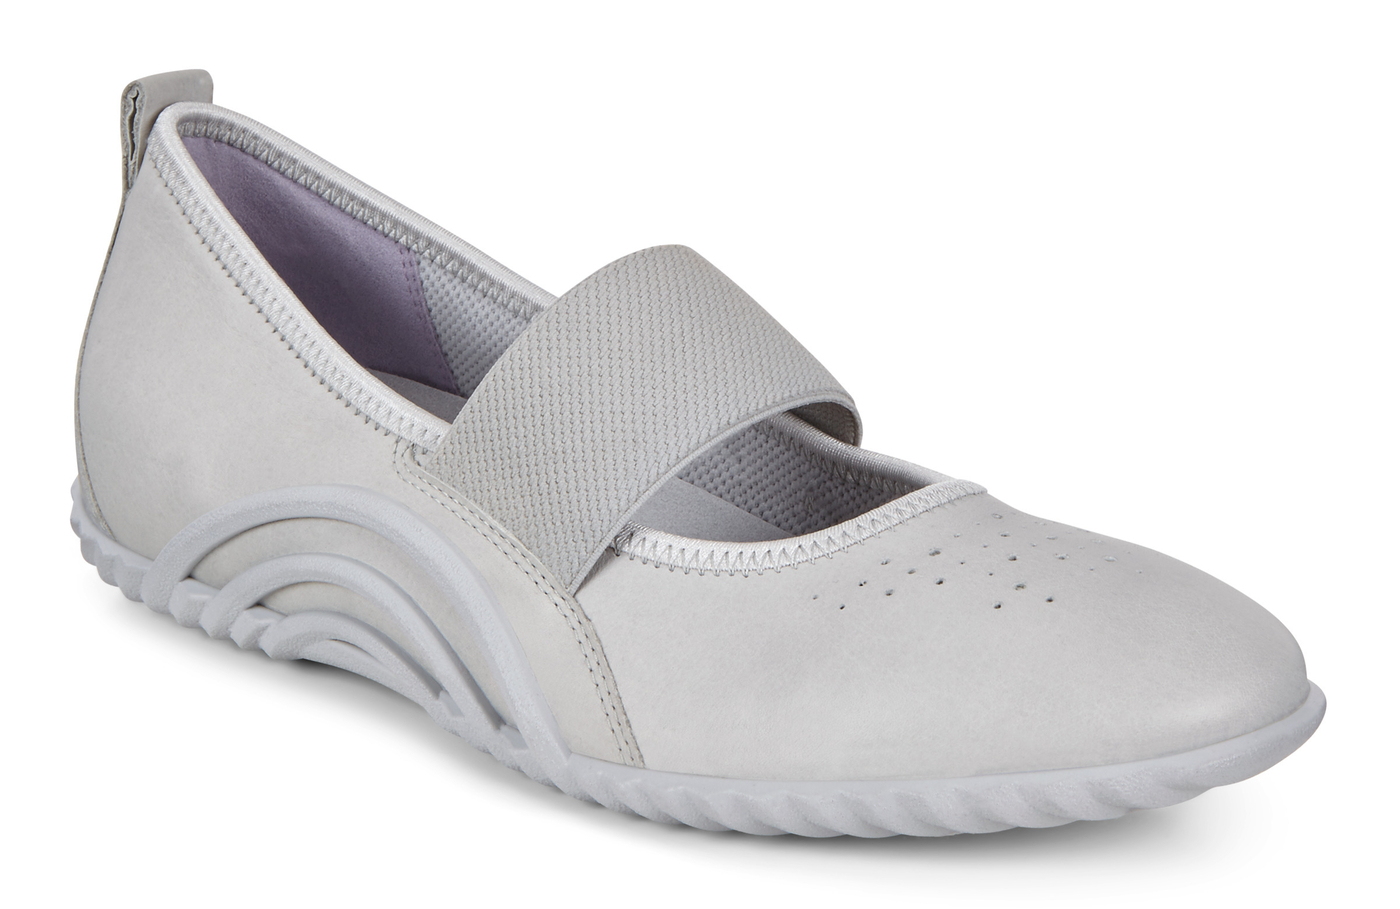 ECCO VIBRATION 1.0 Mary Jane